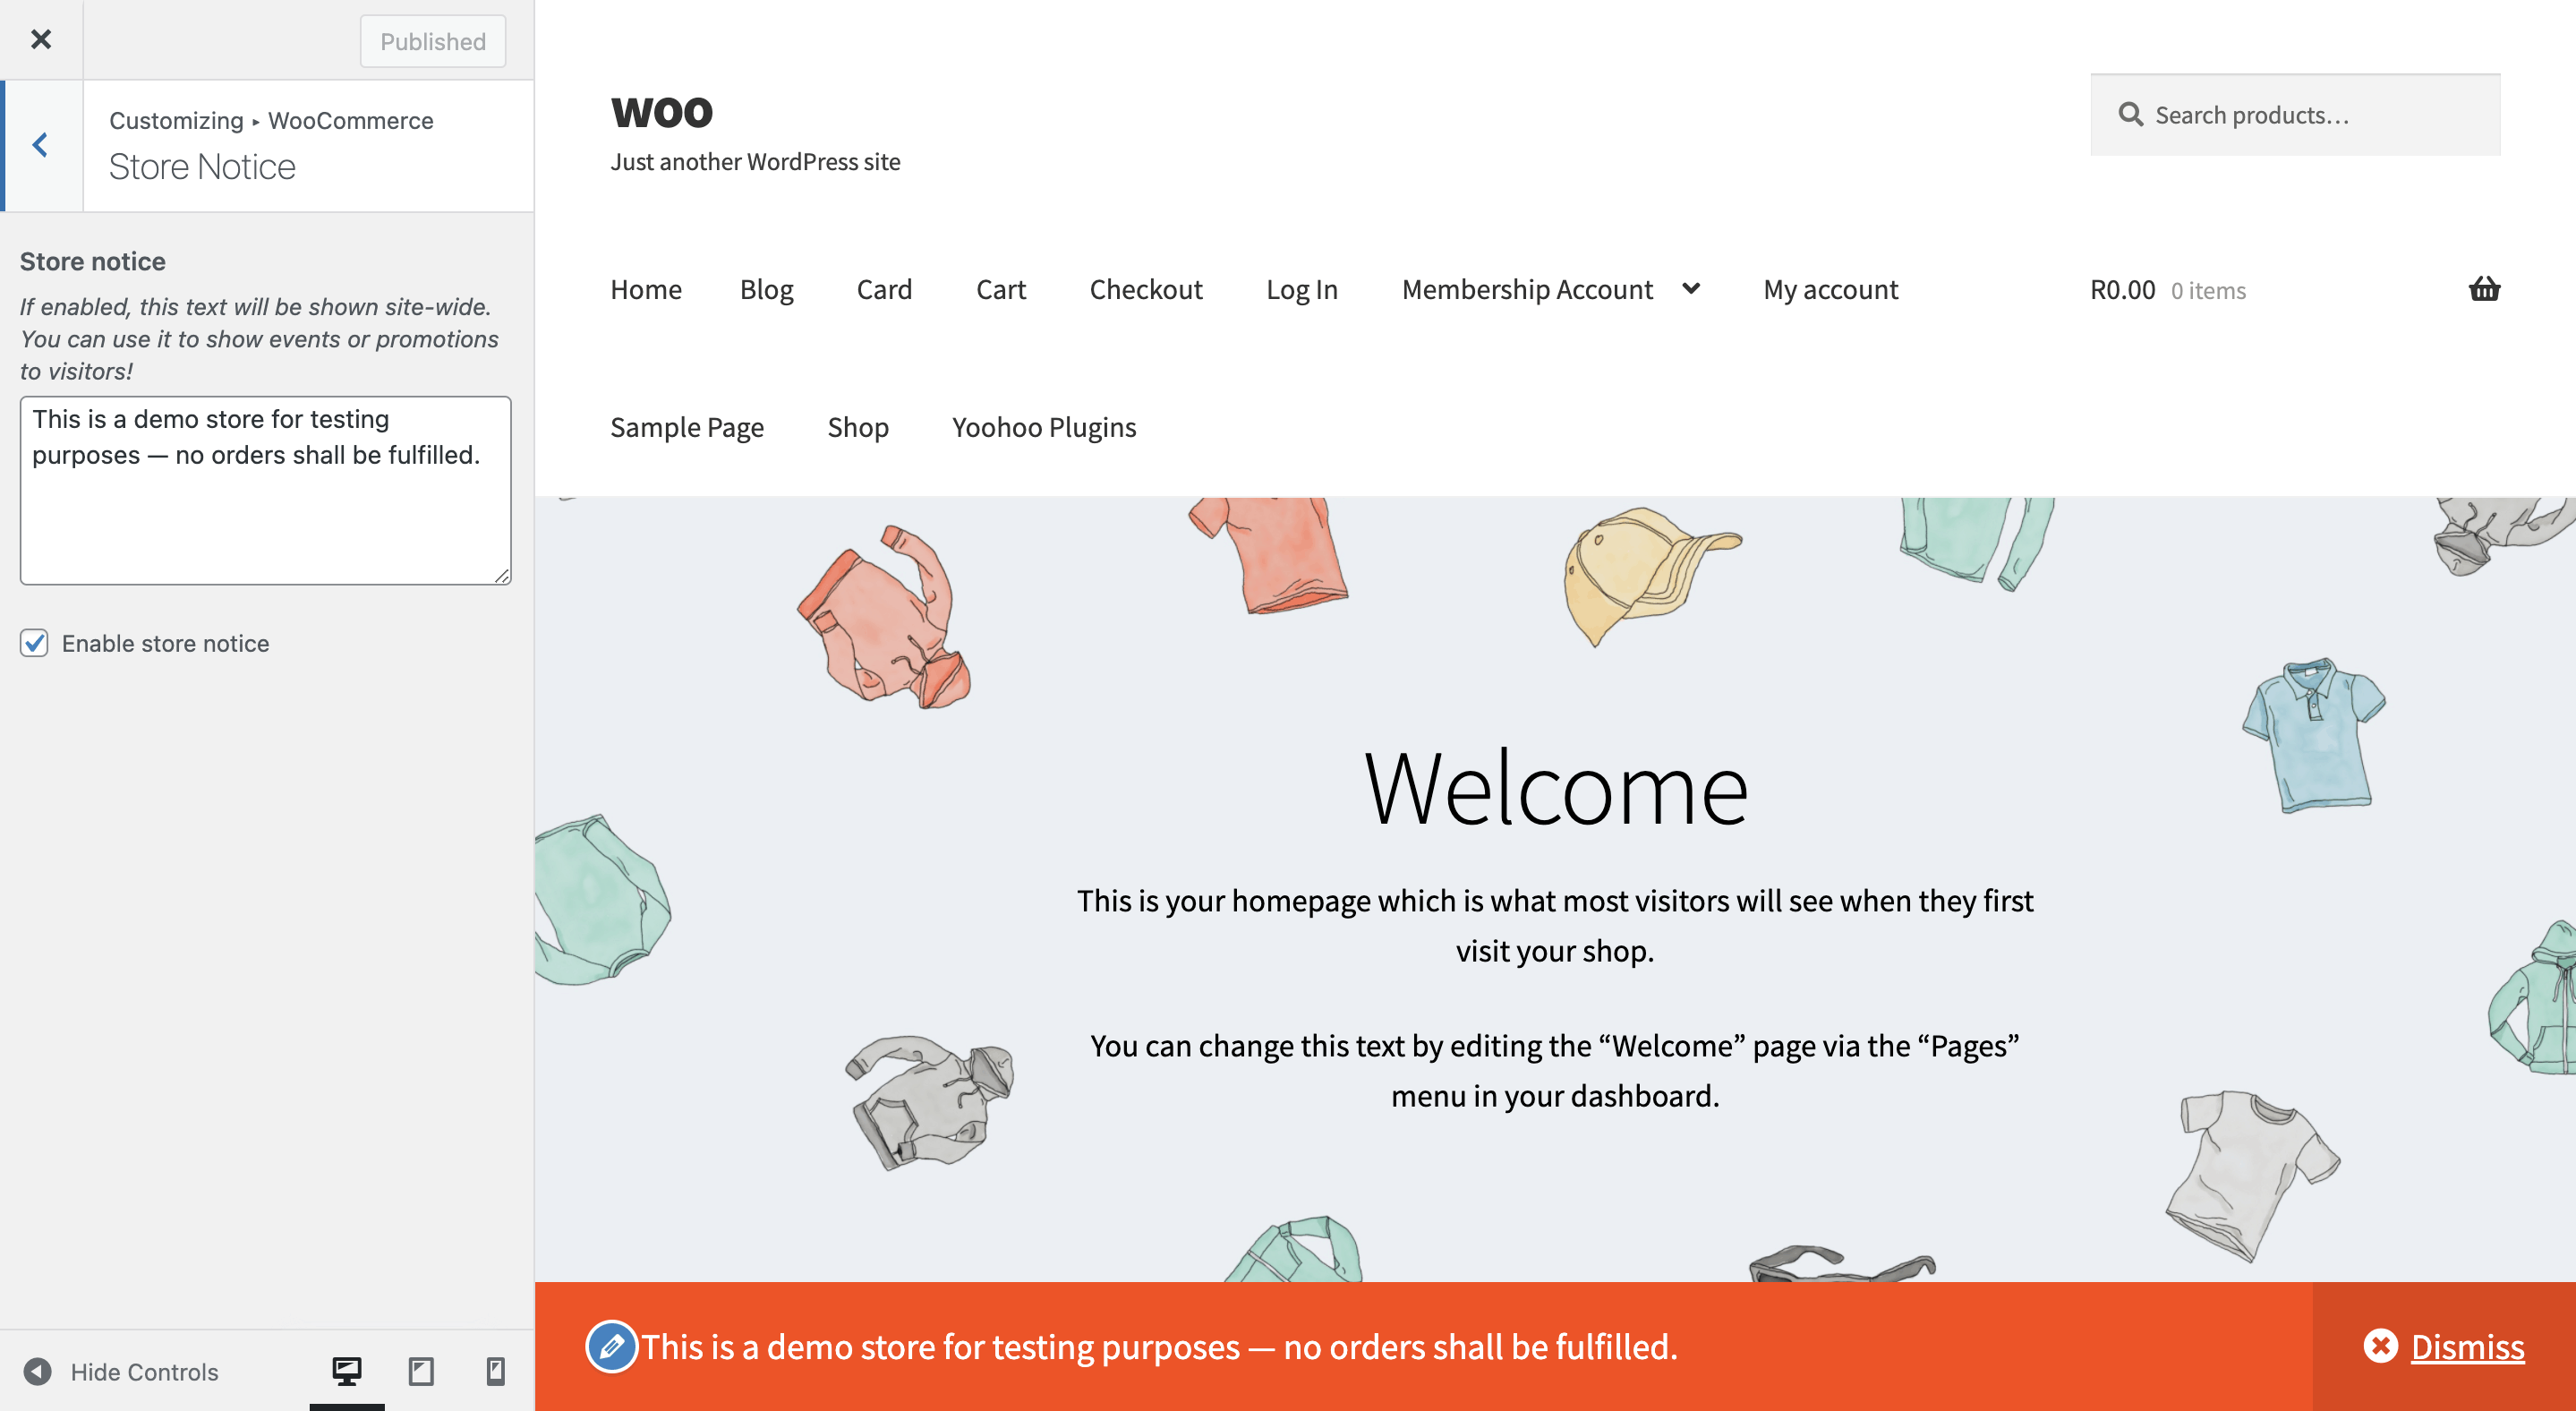 How to turn on the WooCommerce Store notice.